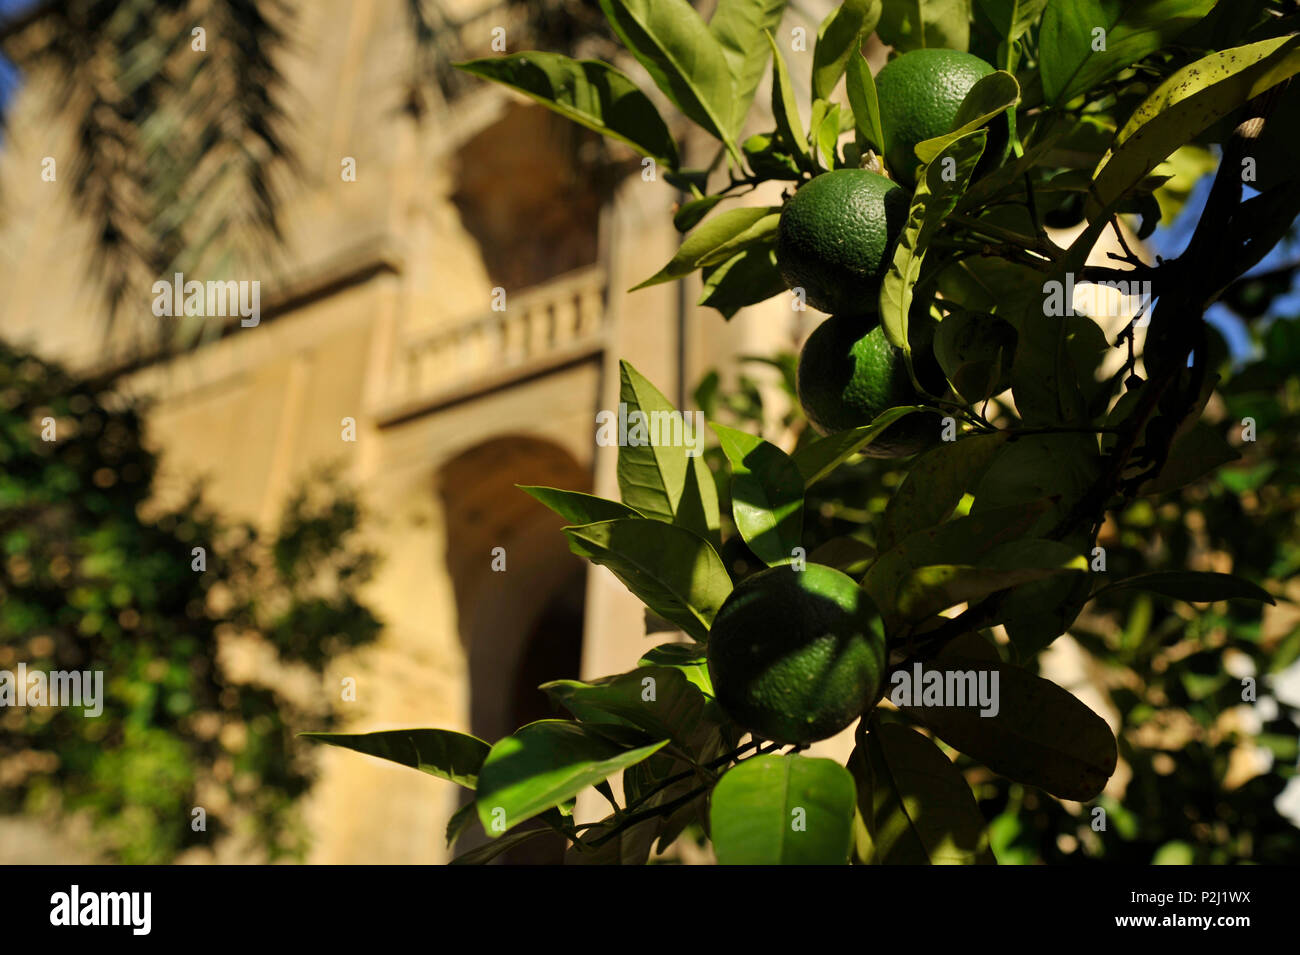 Green oranges on the tree in the garden in the Mezquita in evening, Cordoba, Andalusia, Spain - Stock Image